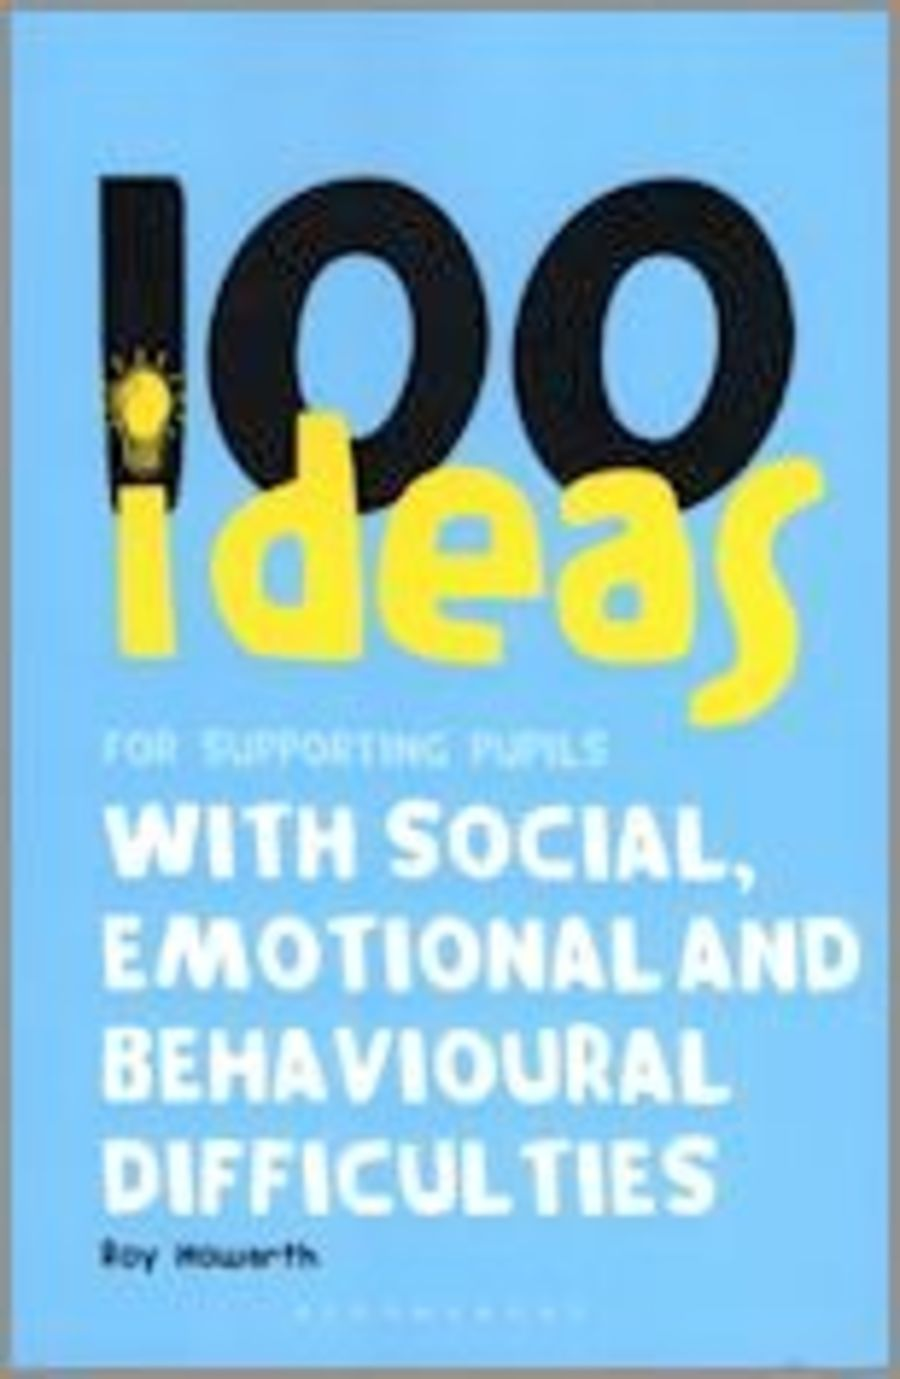 100 Ideas for Supporting Pupils with Social Emotional and Behavioural Difficulties